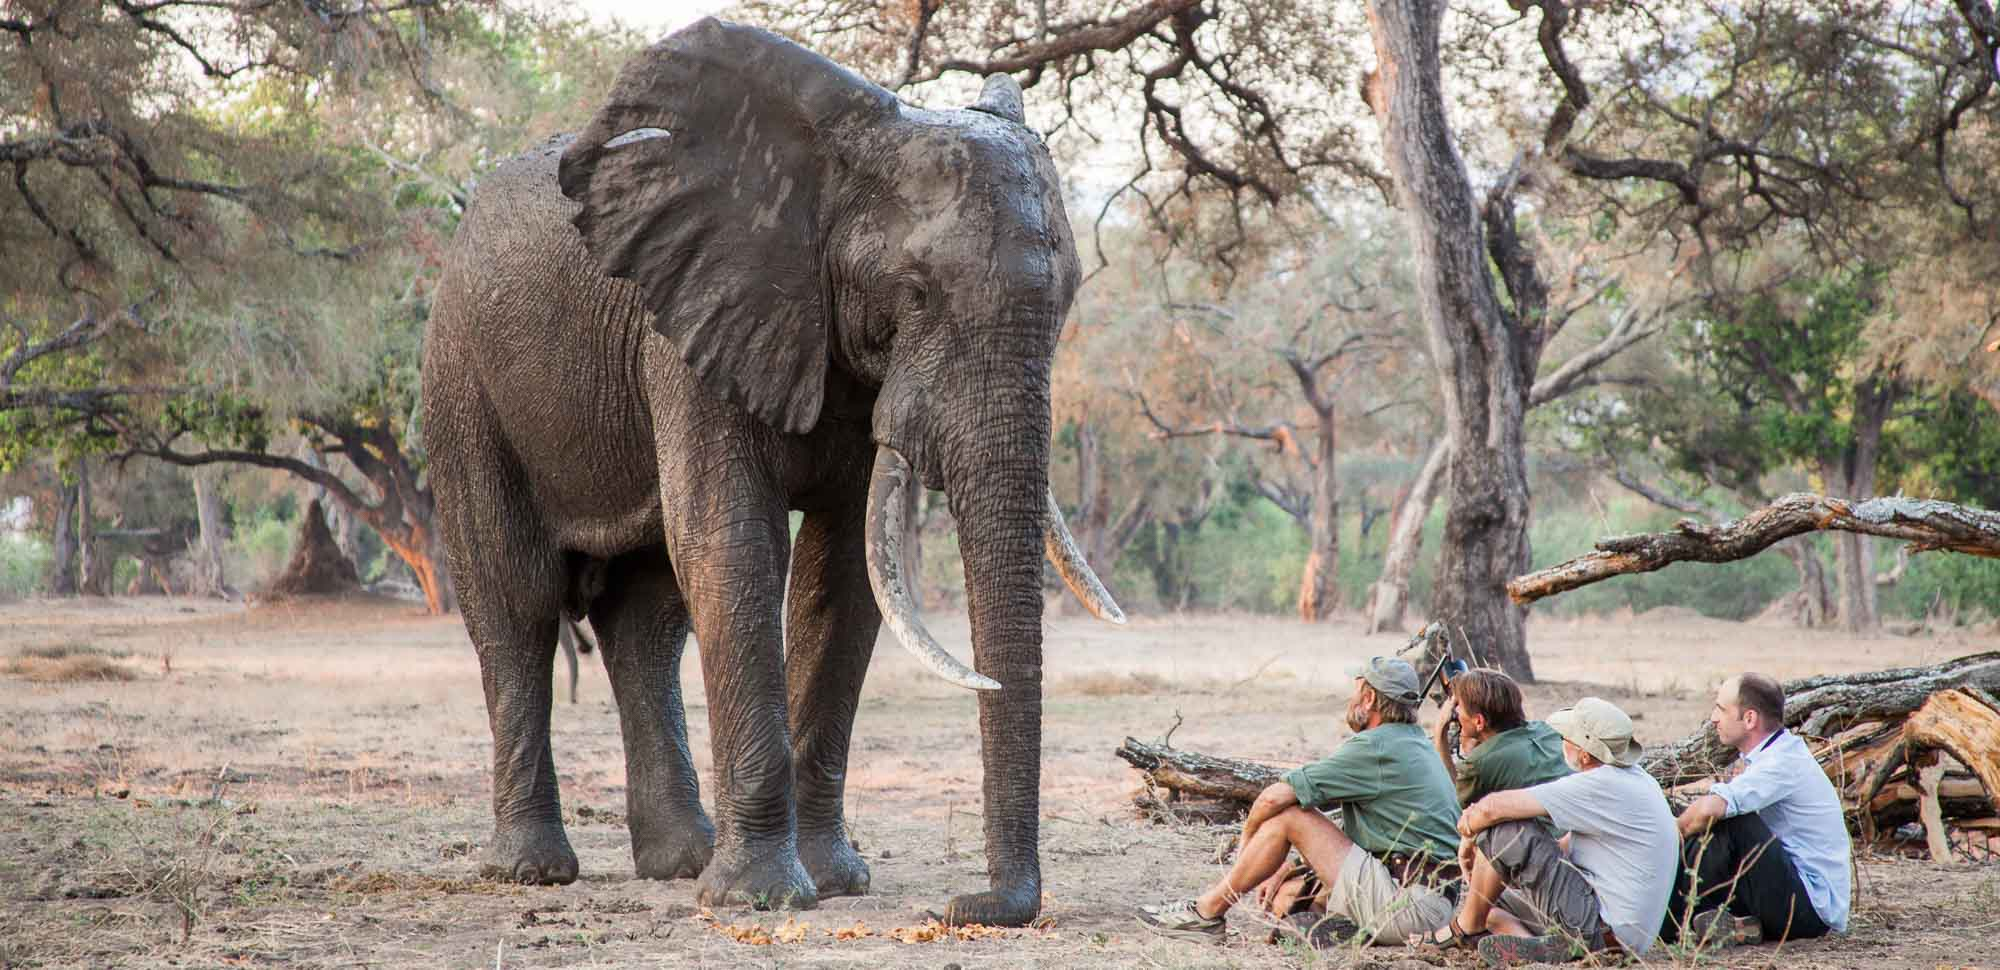 Bull elephant and Stretch Ferreira in Mana Pools National Park in Zimbabwe